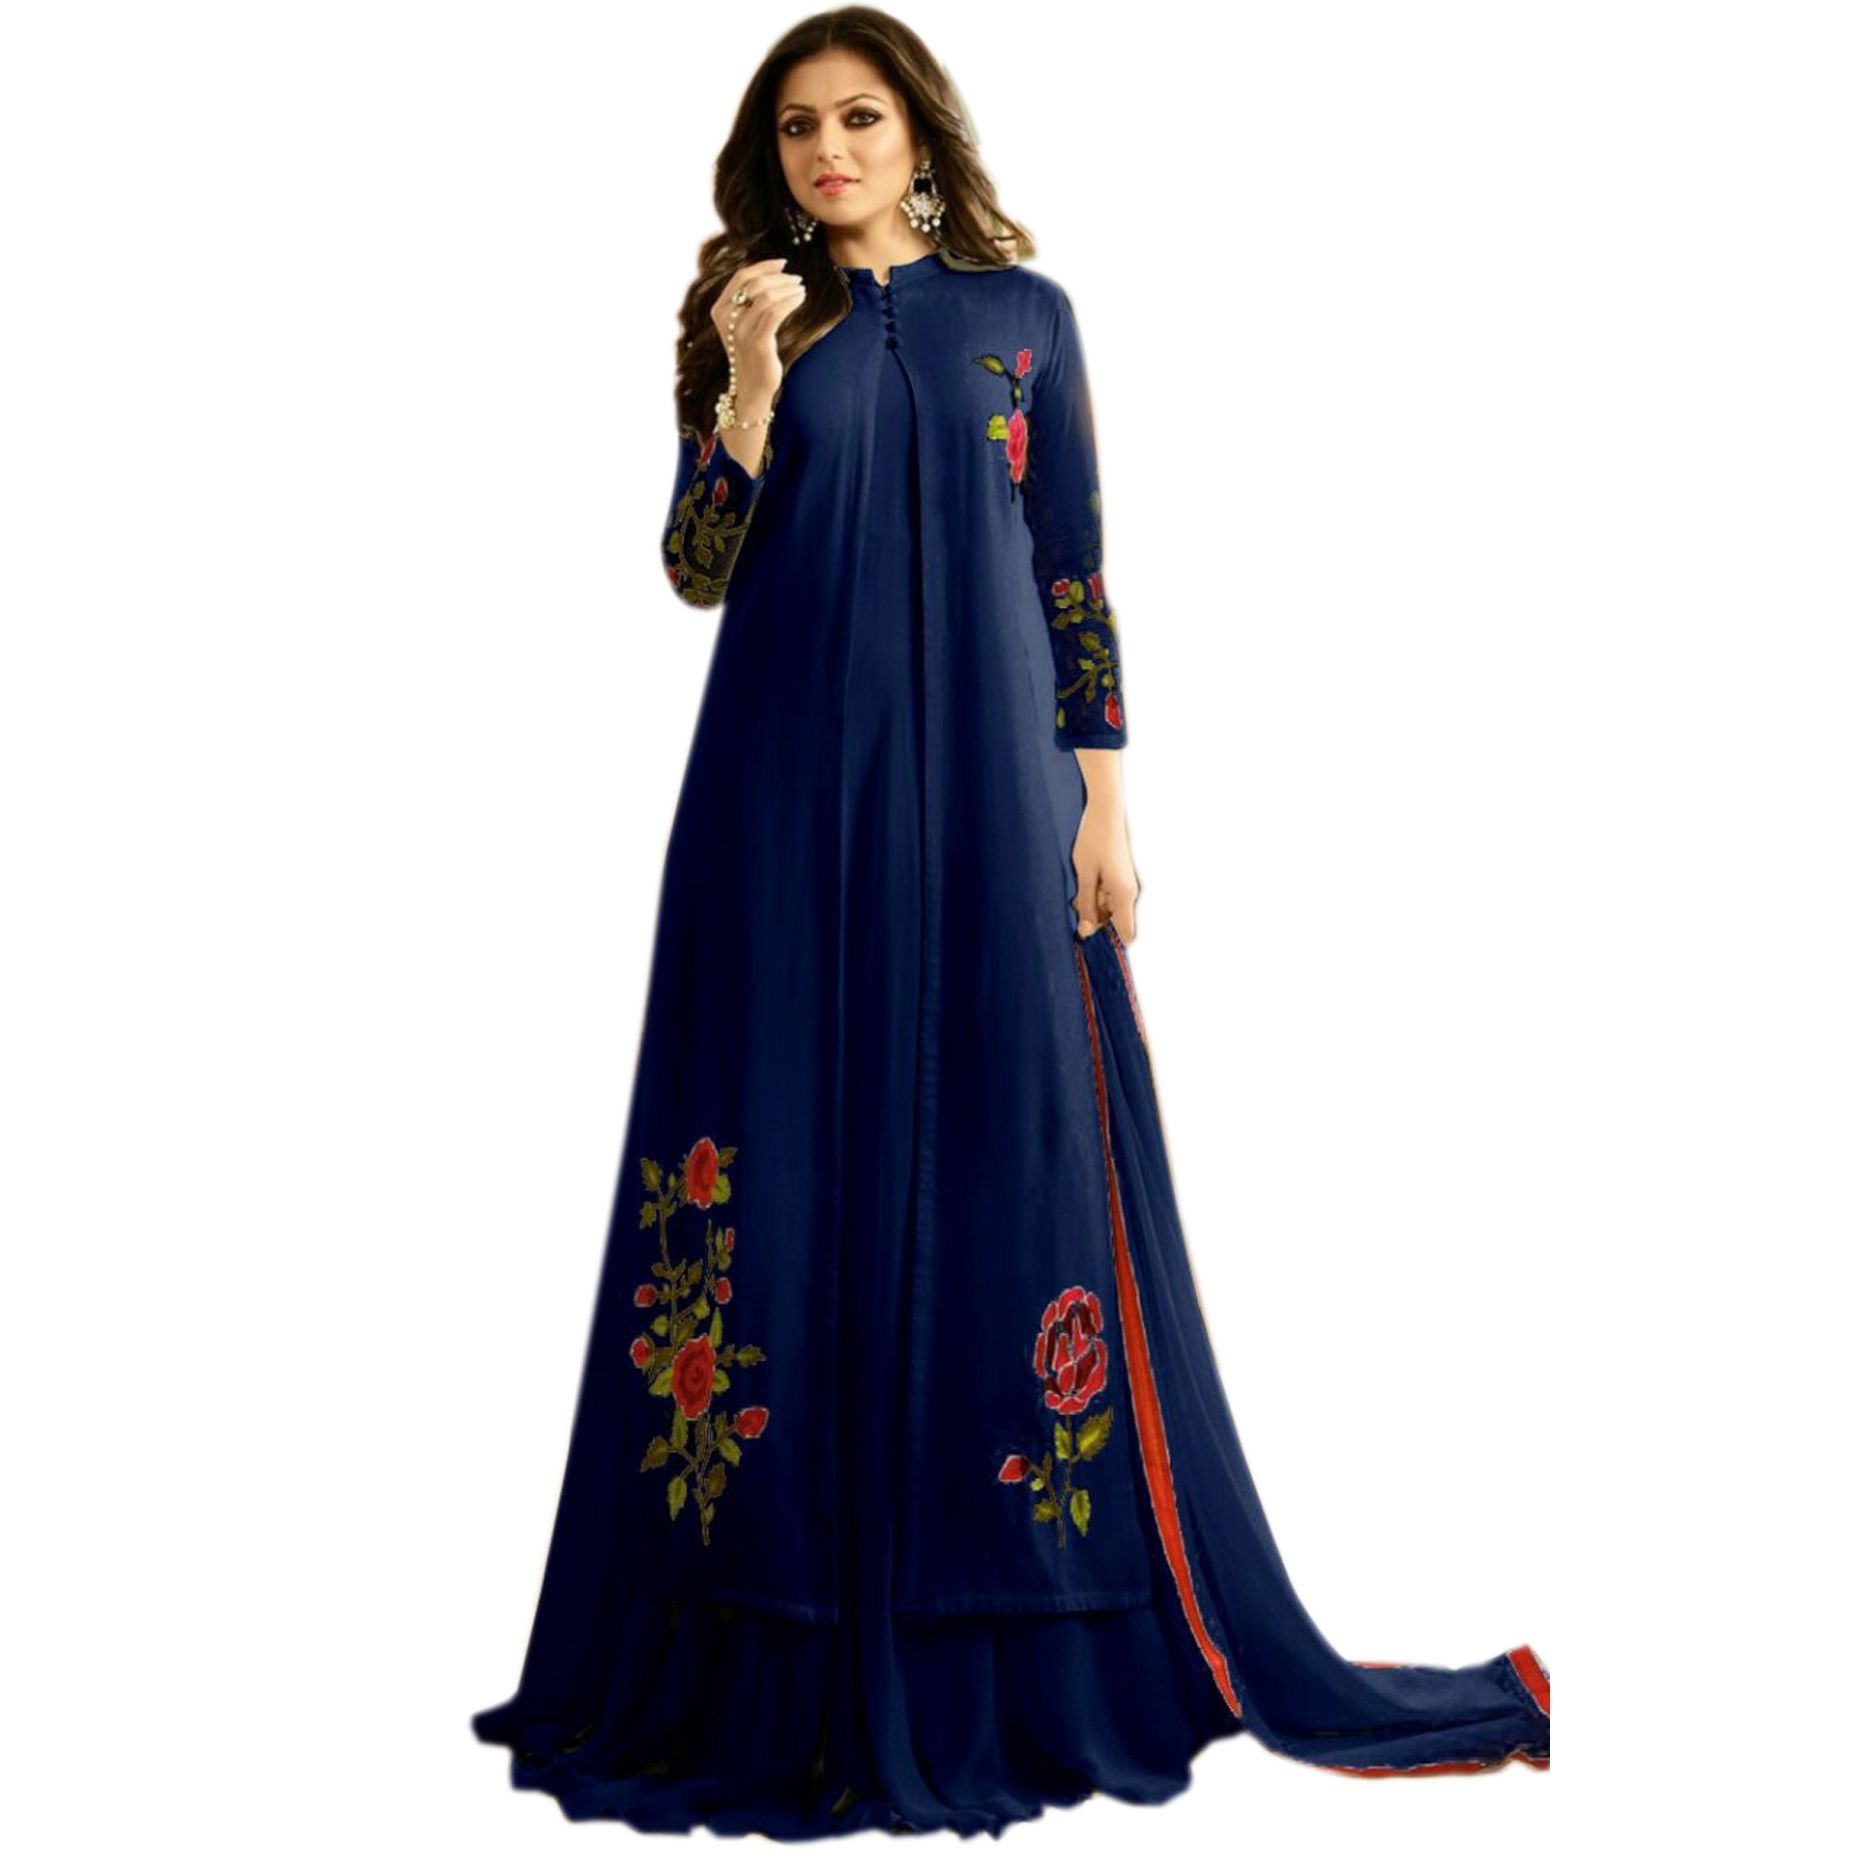 607c8e8cdd Ethnic Empire Women's Georgette Semi Stitch Party Wear Dress ,2018 new  collection,Anarkali Suit ...